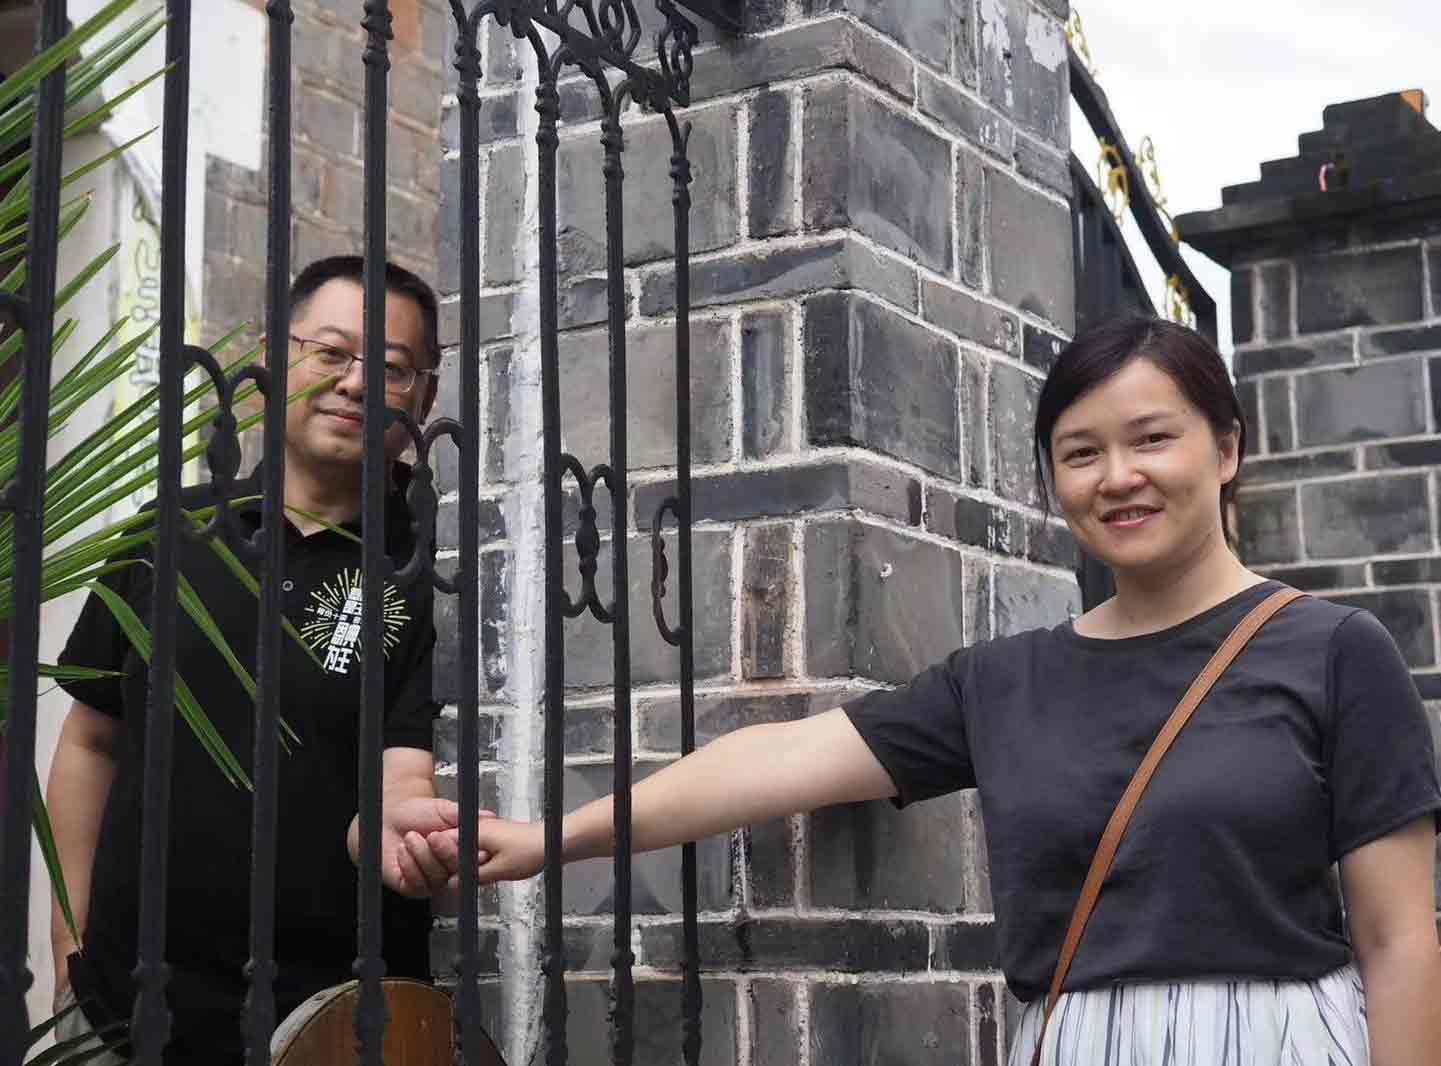 Both Pastor Wang Yi and his wife Jiang Rong are among the arrested church members.